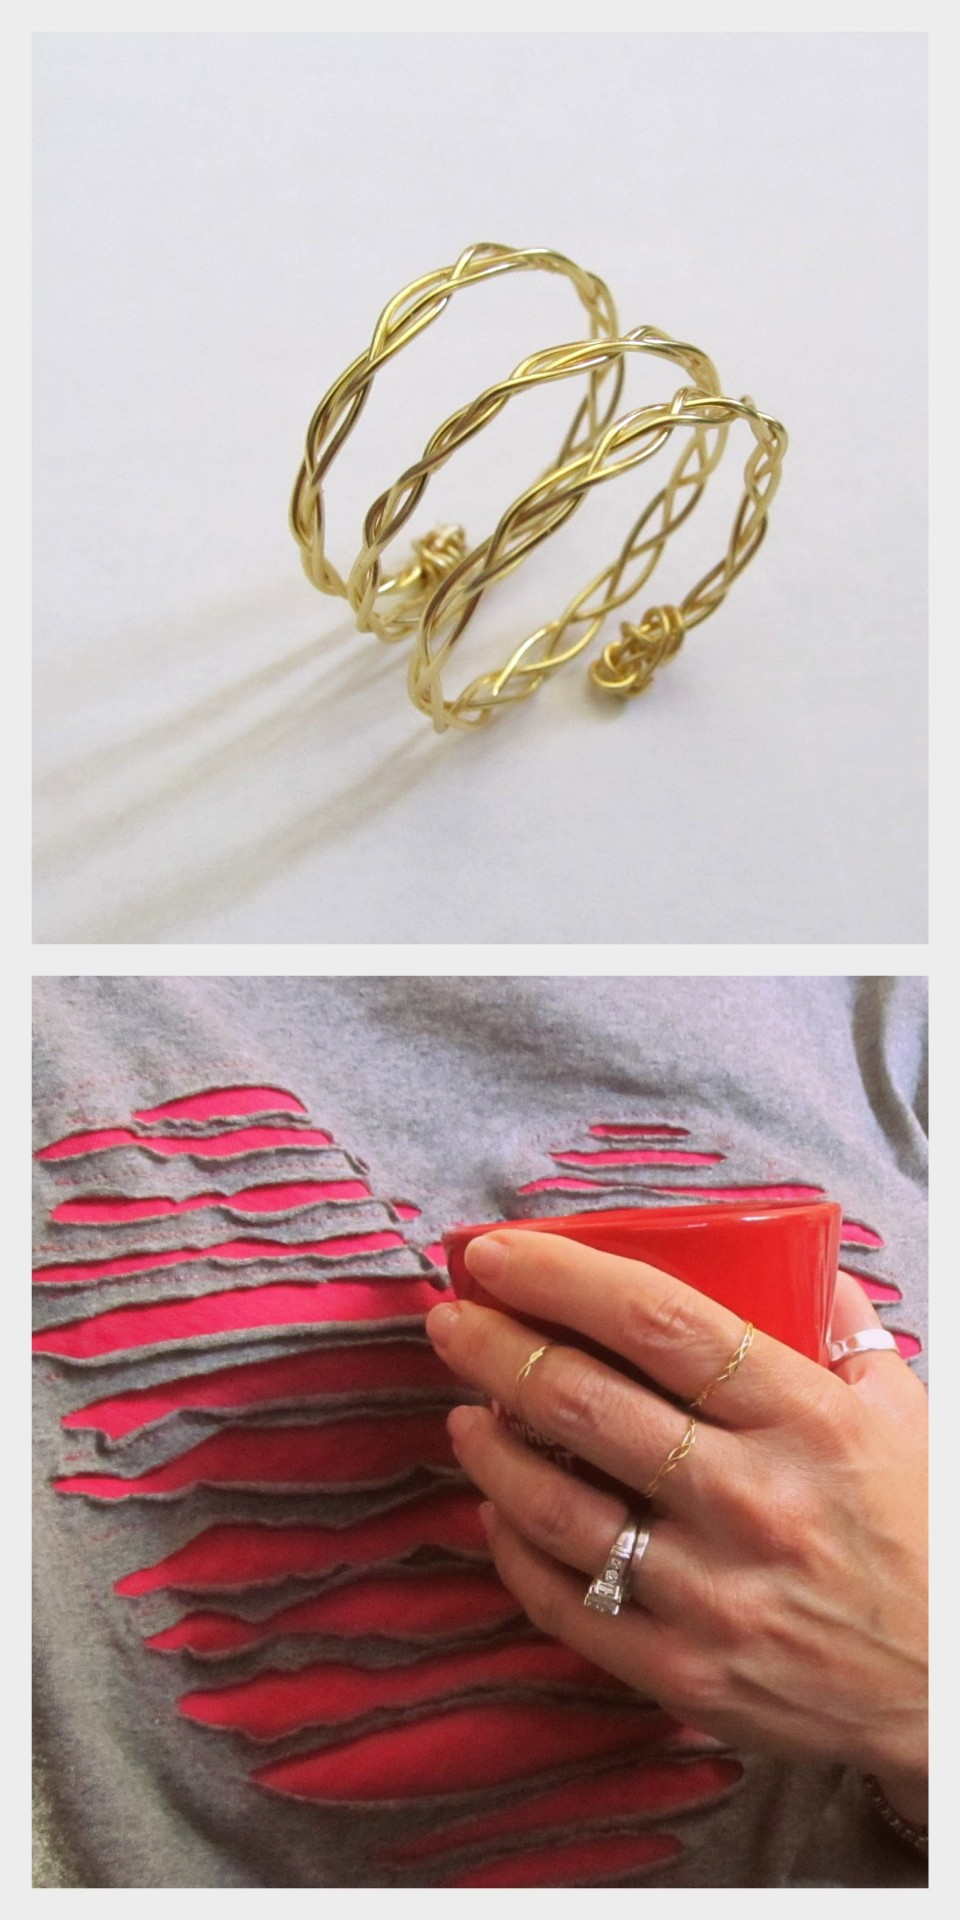 truebluemeandyou:  DIY Wire Braided Rings Tutorials from Wobisobi here. Love the shirt on the bottom photo? I posted Anne's shredded heart tee here. For lots more easy wire jewelry go here: truebluemeandyou.tumblr.com/tagged/wire and for more of Anne's easy jewelry and tee restyles go here: truebluemeandyou.tumblr.com/tagged/wobisobi